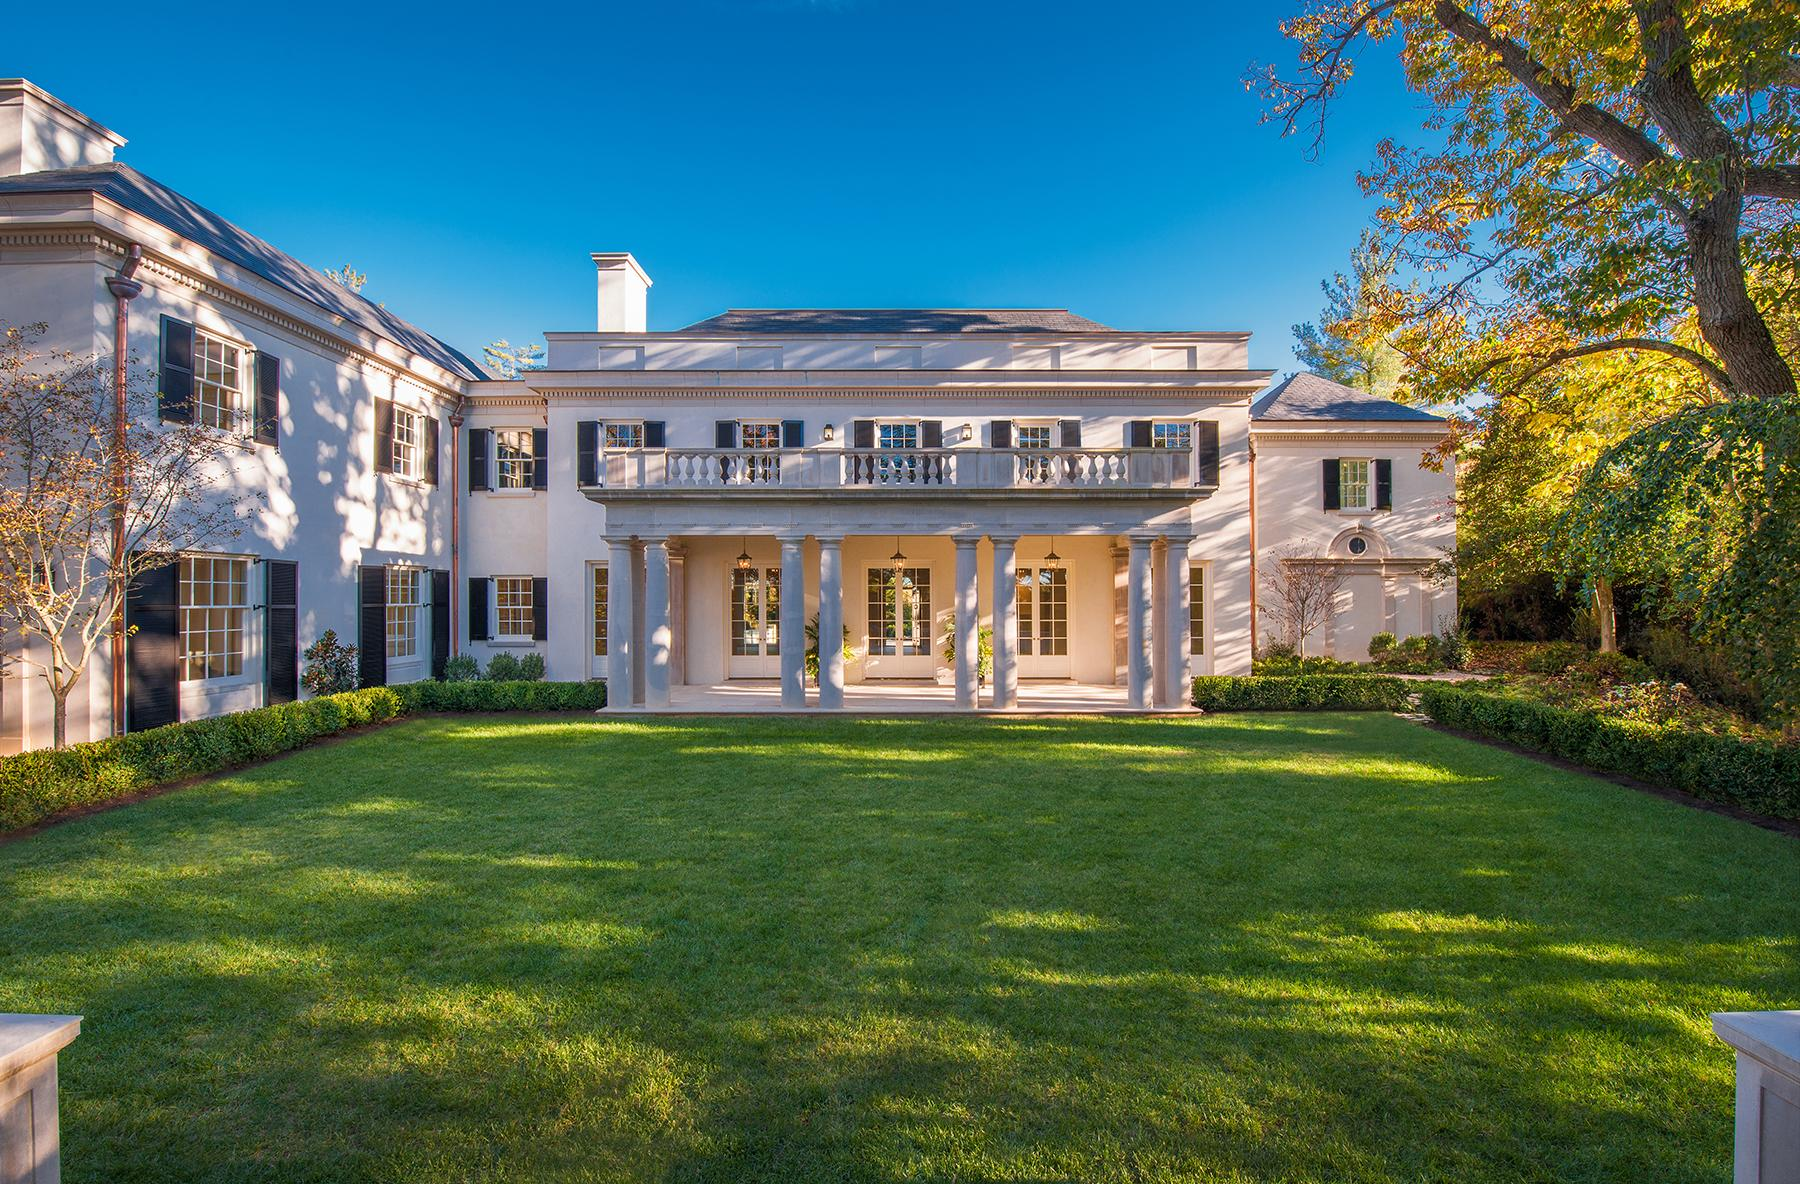 This property was once owned by one of Washington's most philanthropic families, but after their home was burned down, the land was acquired to develop as an estate property which was completed in 2016. Listed at $22 million, it's now the most expensive listing on the market in the DMV. (Image: Maxwell MacKenzie)